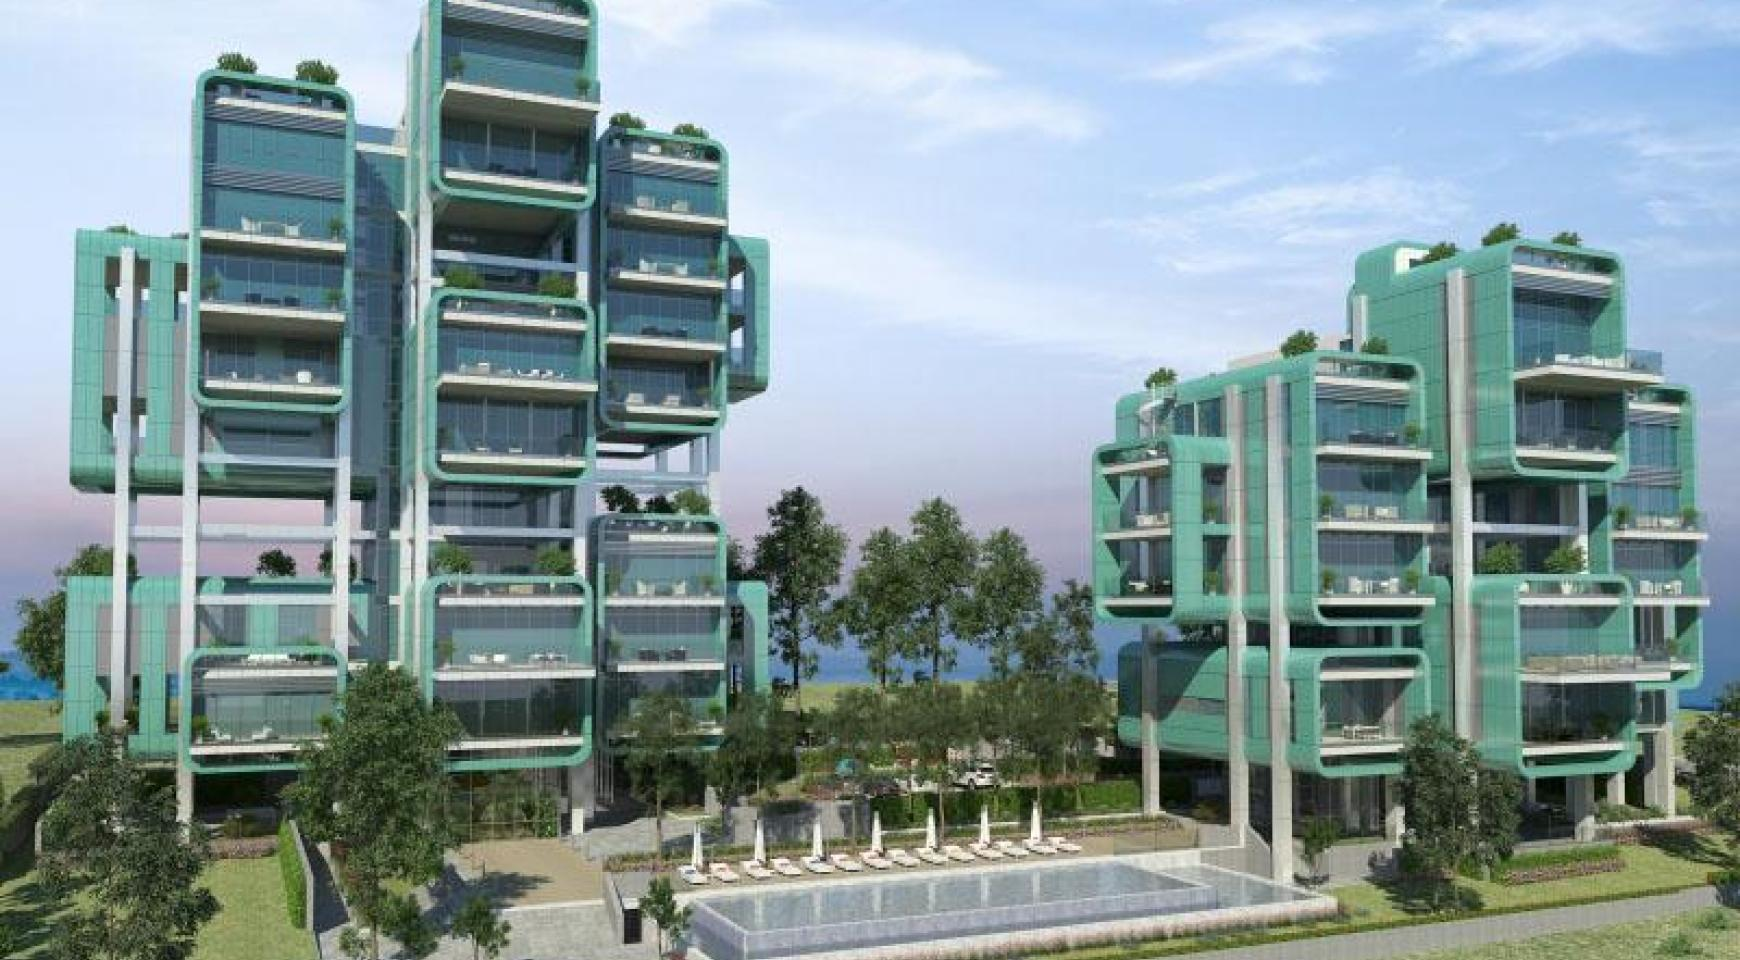 Elite 2 Bedroom Apartment with Roof Garden within a New Complex - 26